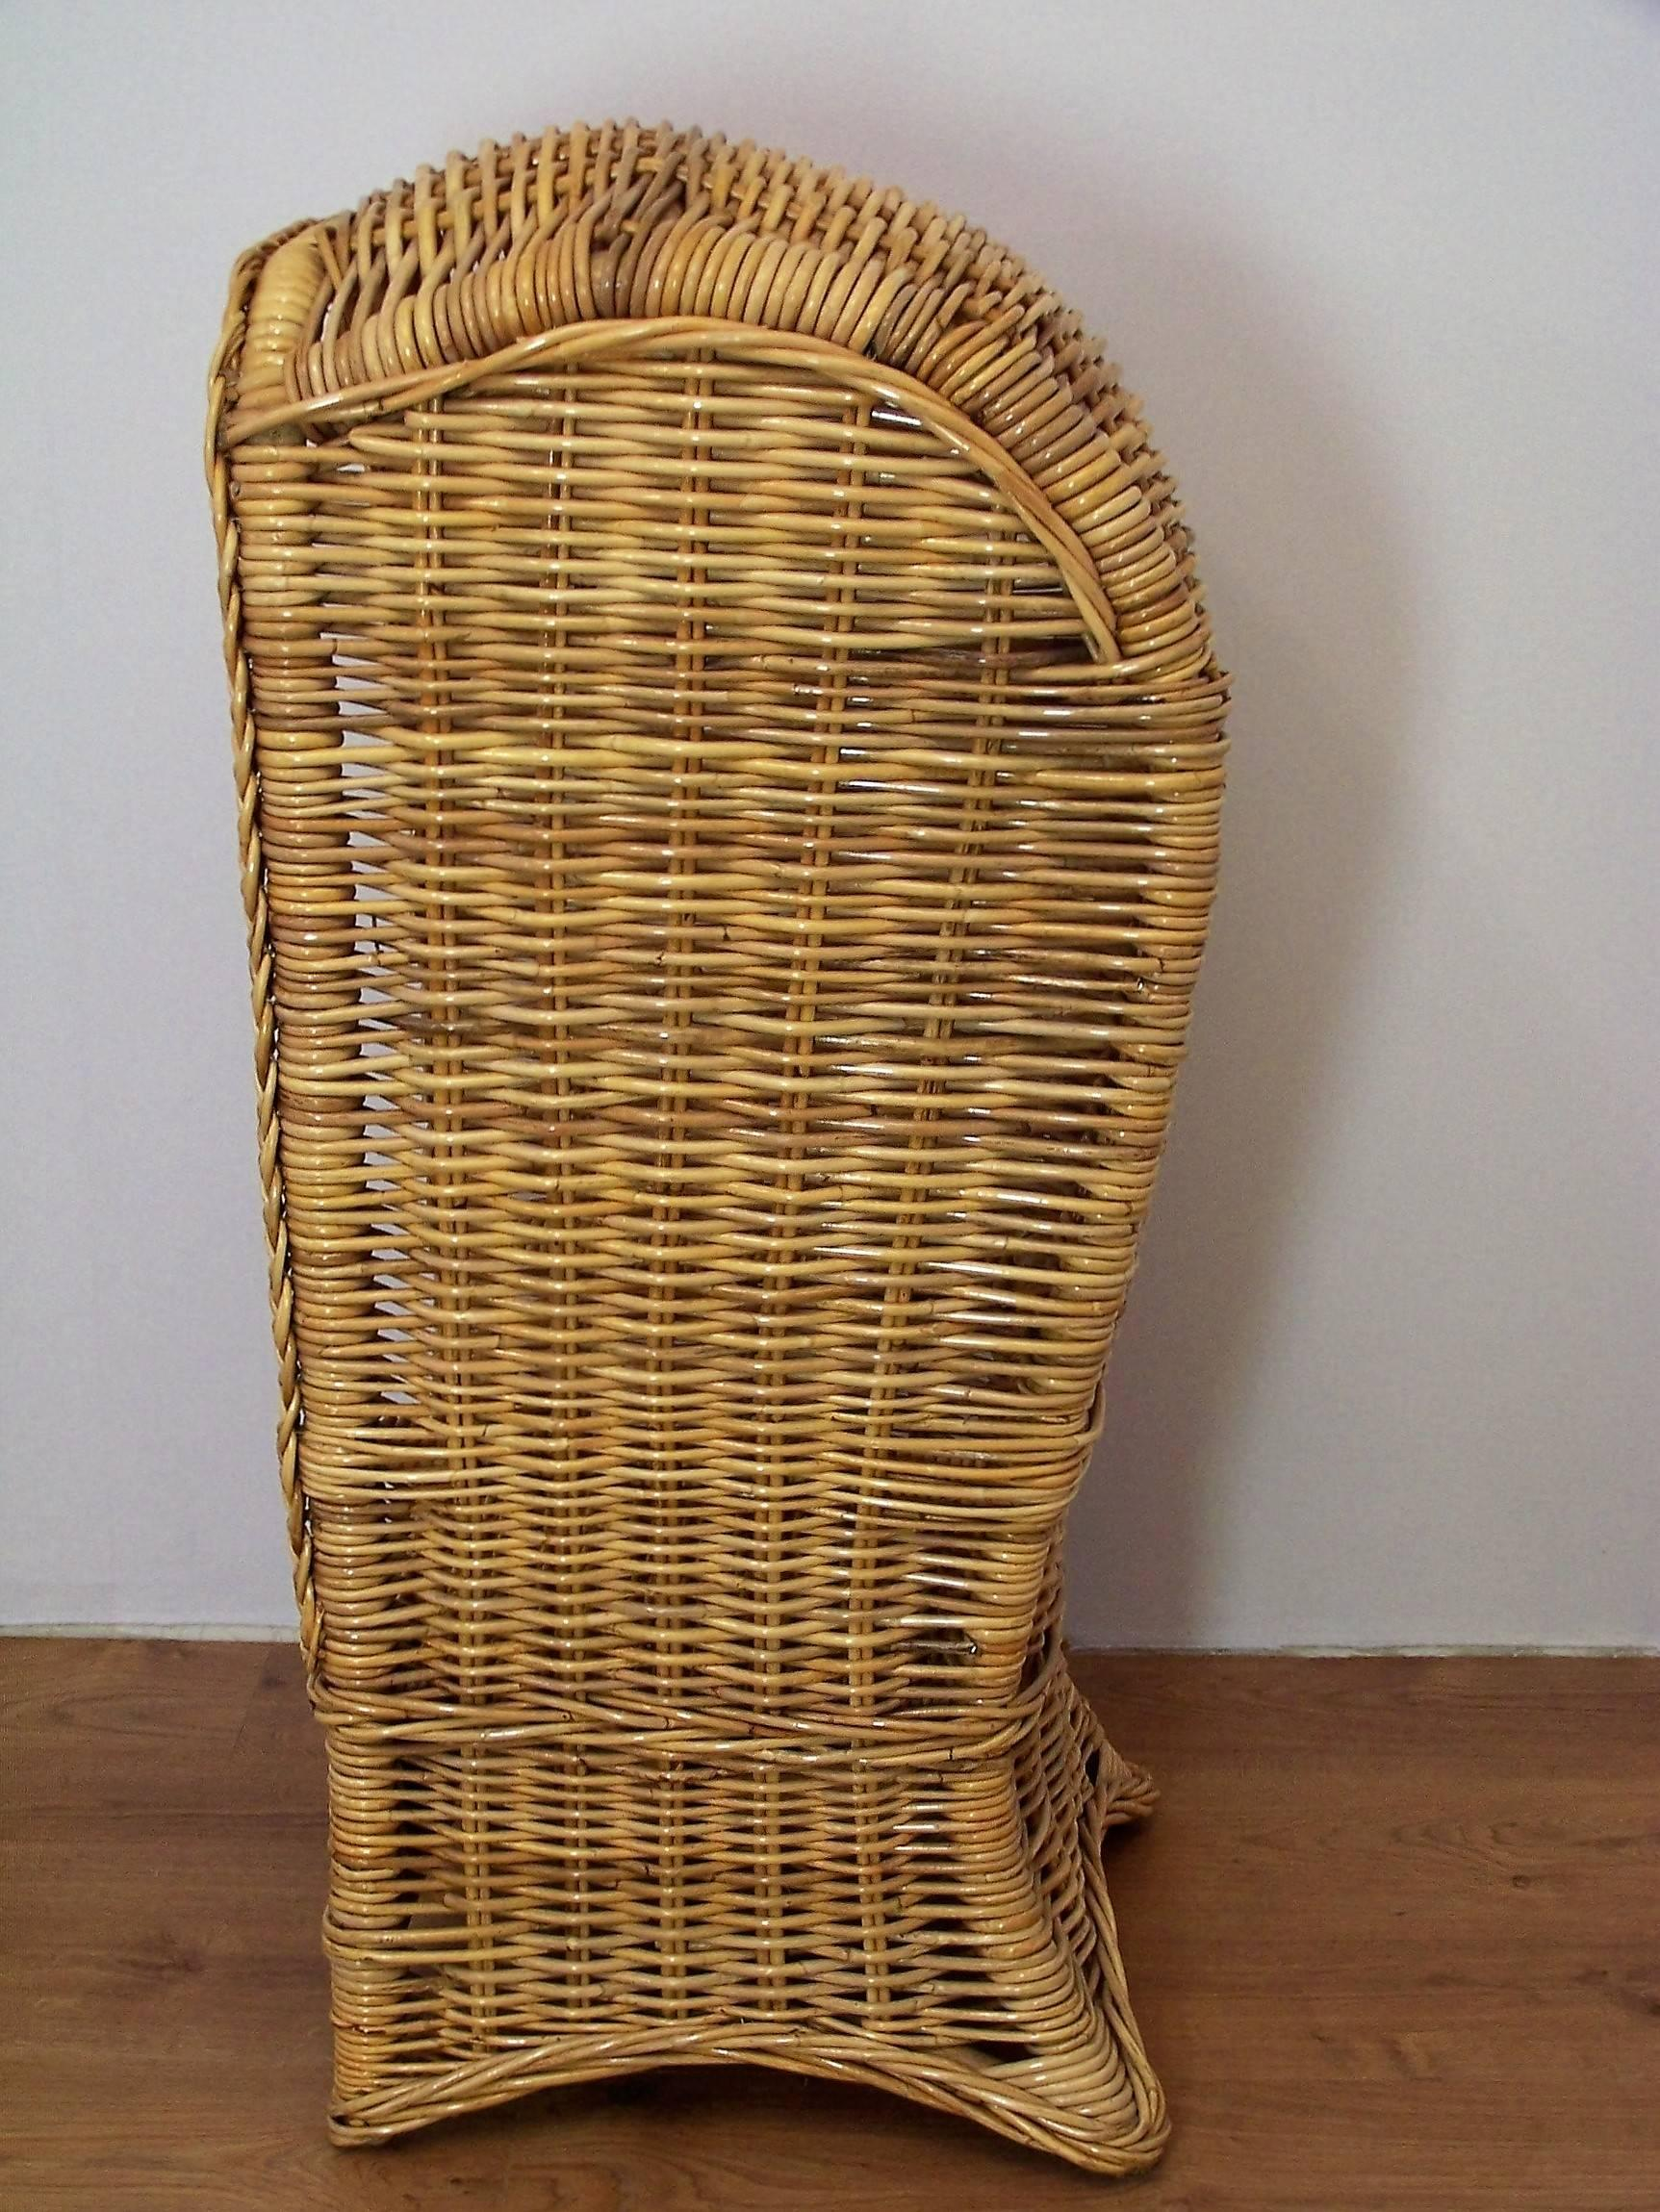 childs rattan chair layout design cabin for child sale at 1stdibs original and scandinavian style this beautiful children will be a centrepiece